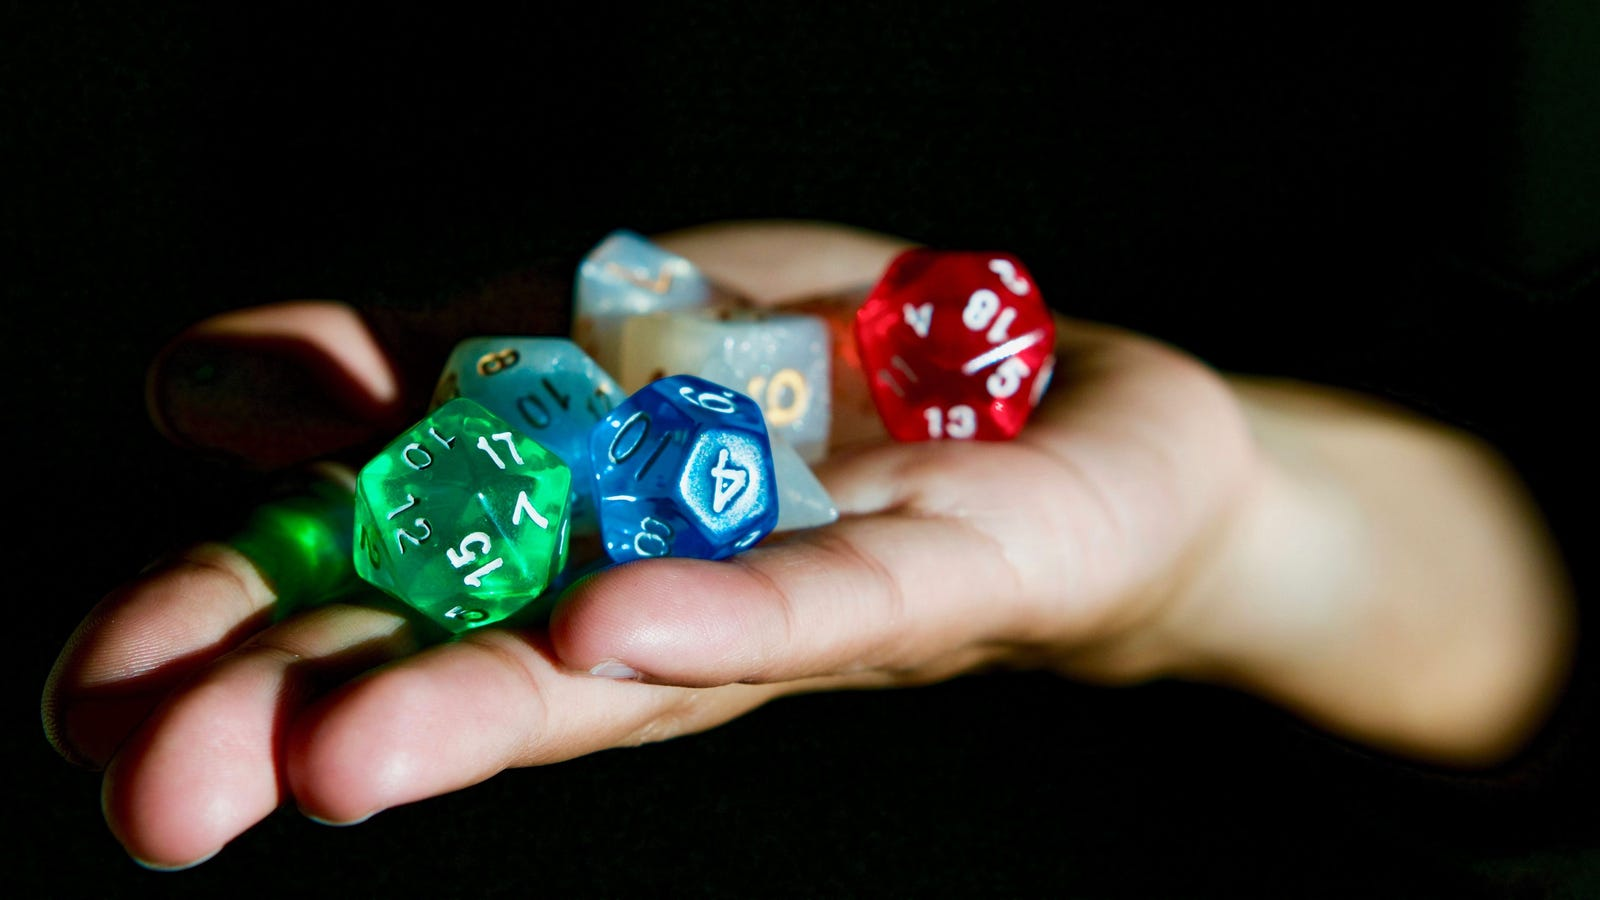 Use This iOS Shortcut to Roll New Dungeons & Dragons Characters